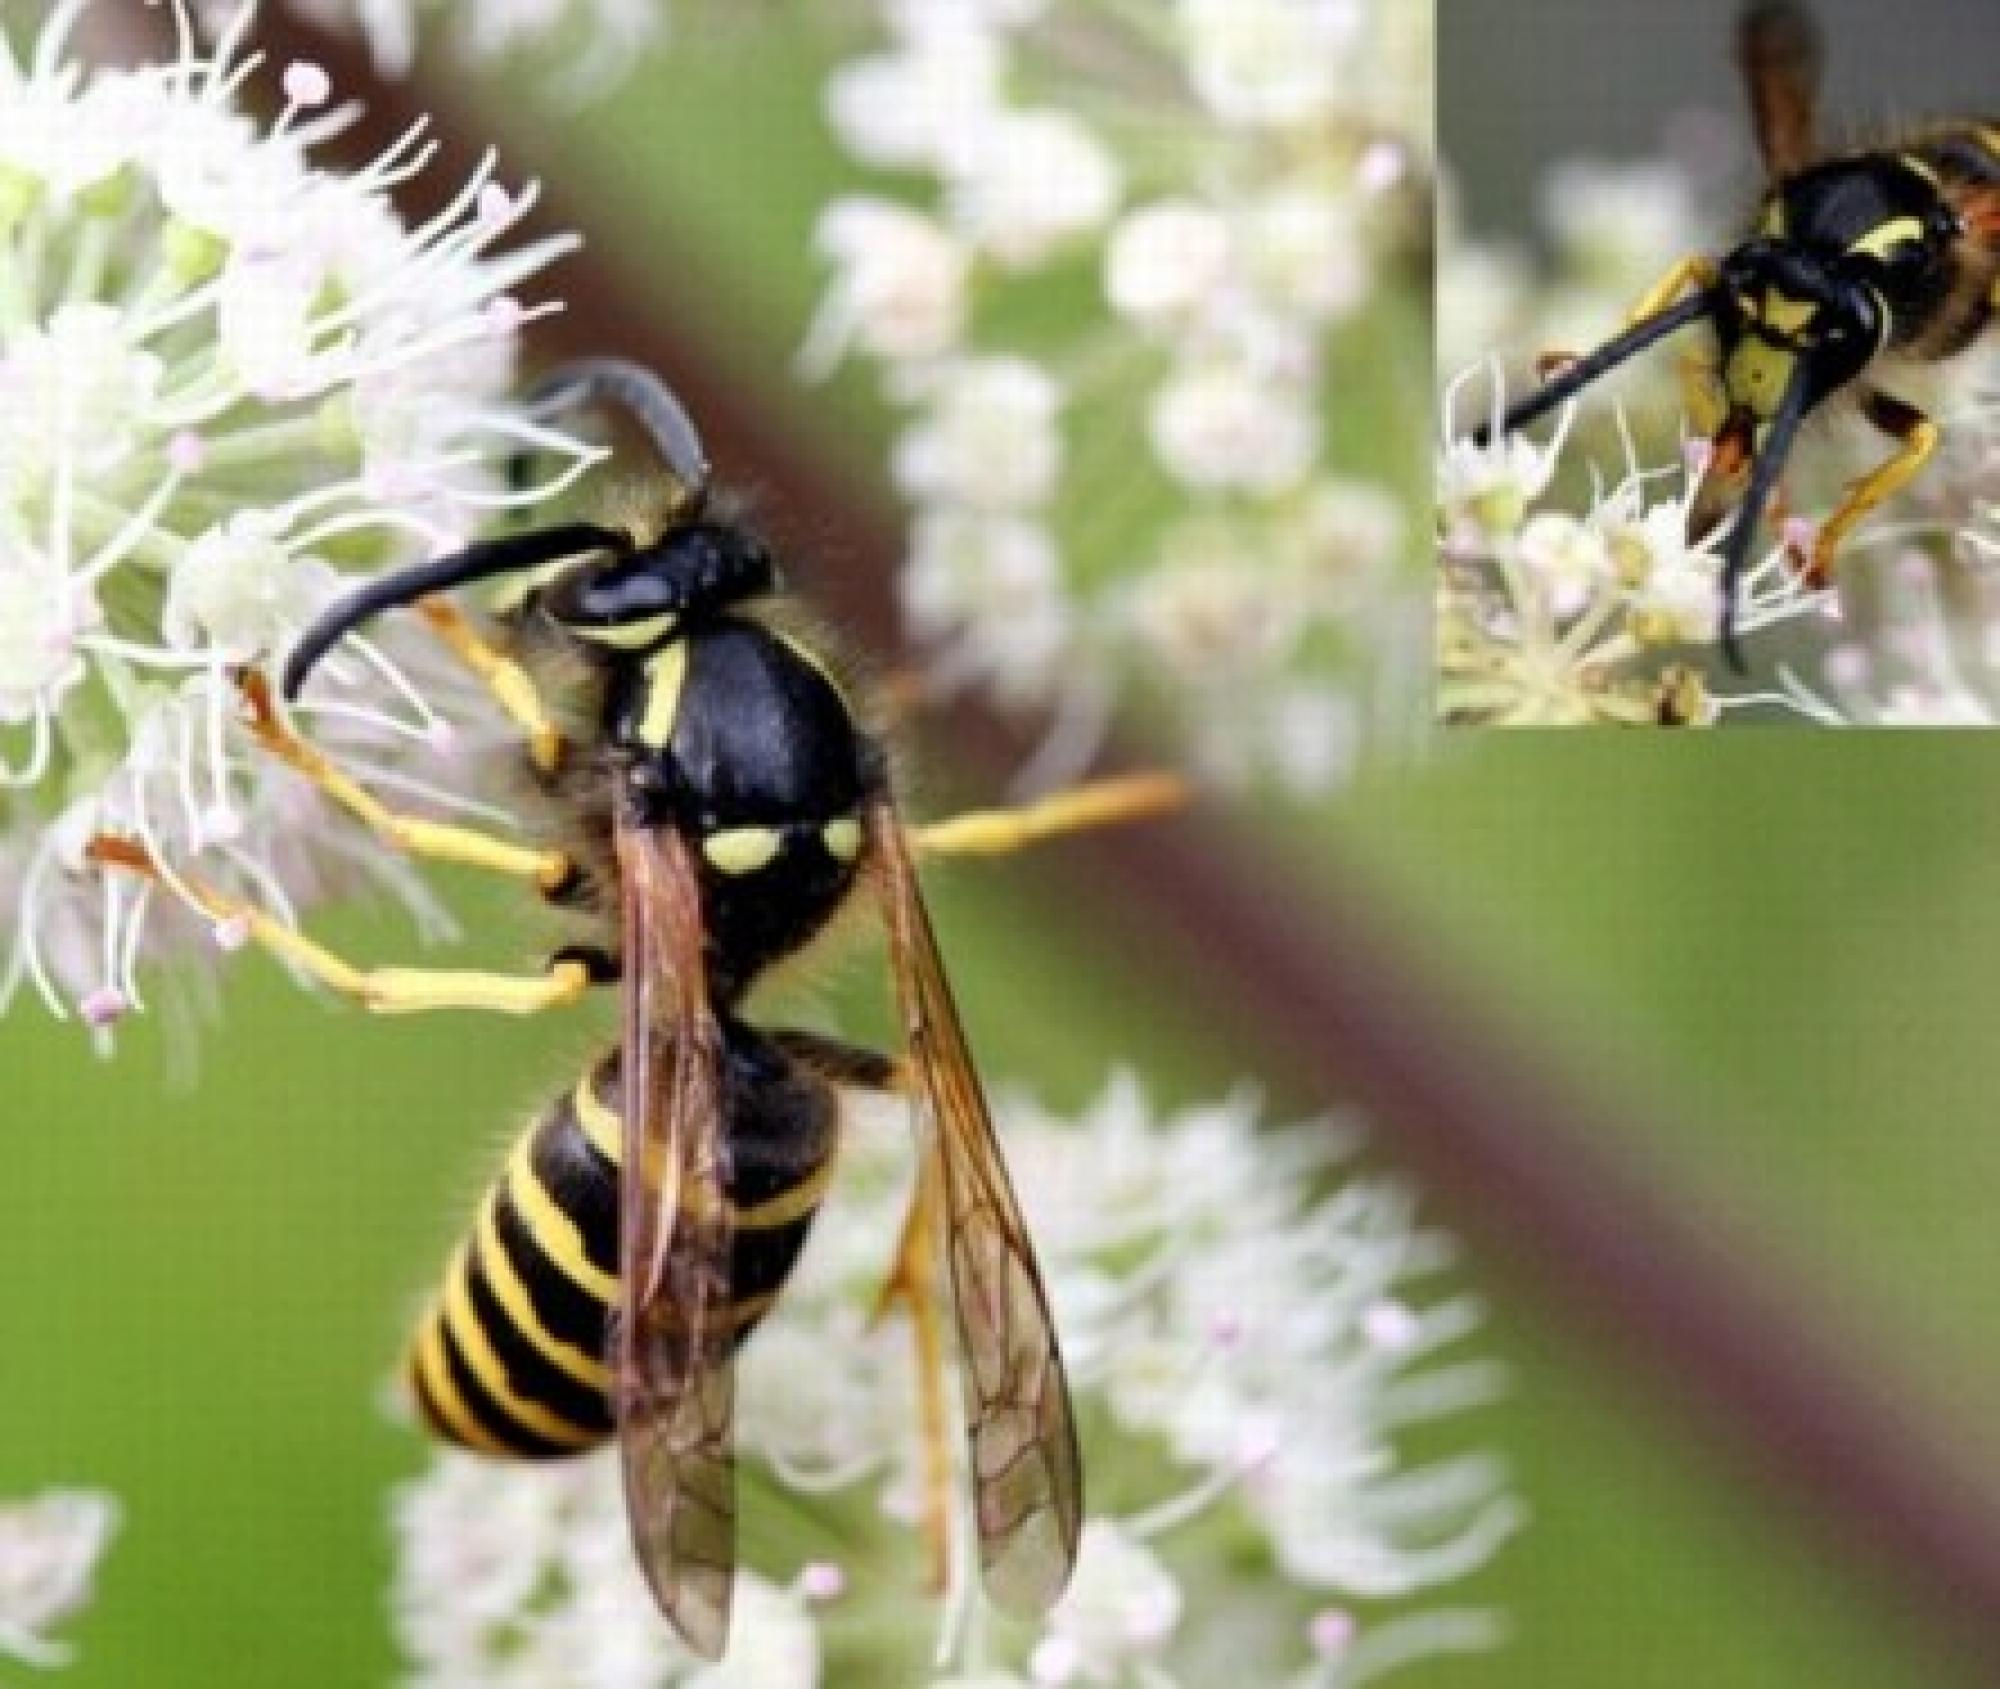 In colonies of tree wasps , the individuals that police the reproduction of workers are more likely to cheat and lay eggs themselves, but overall, they maintain high levels of order in the colony.